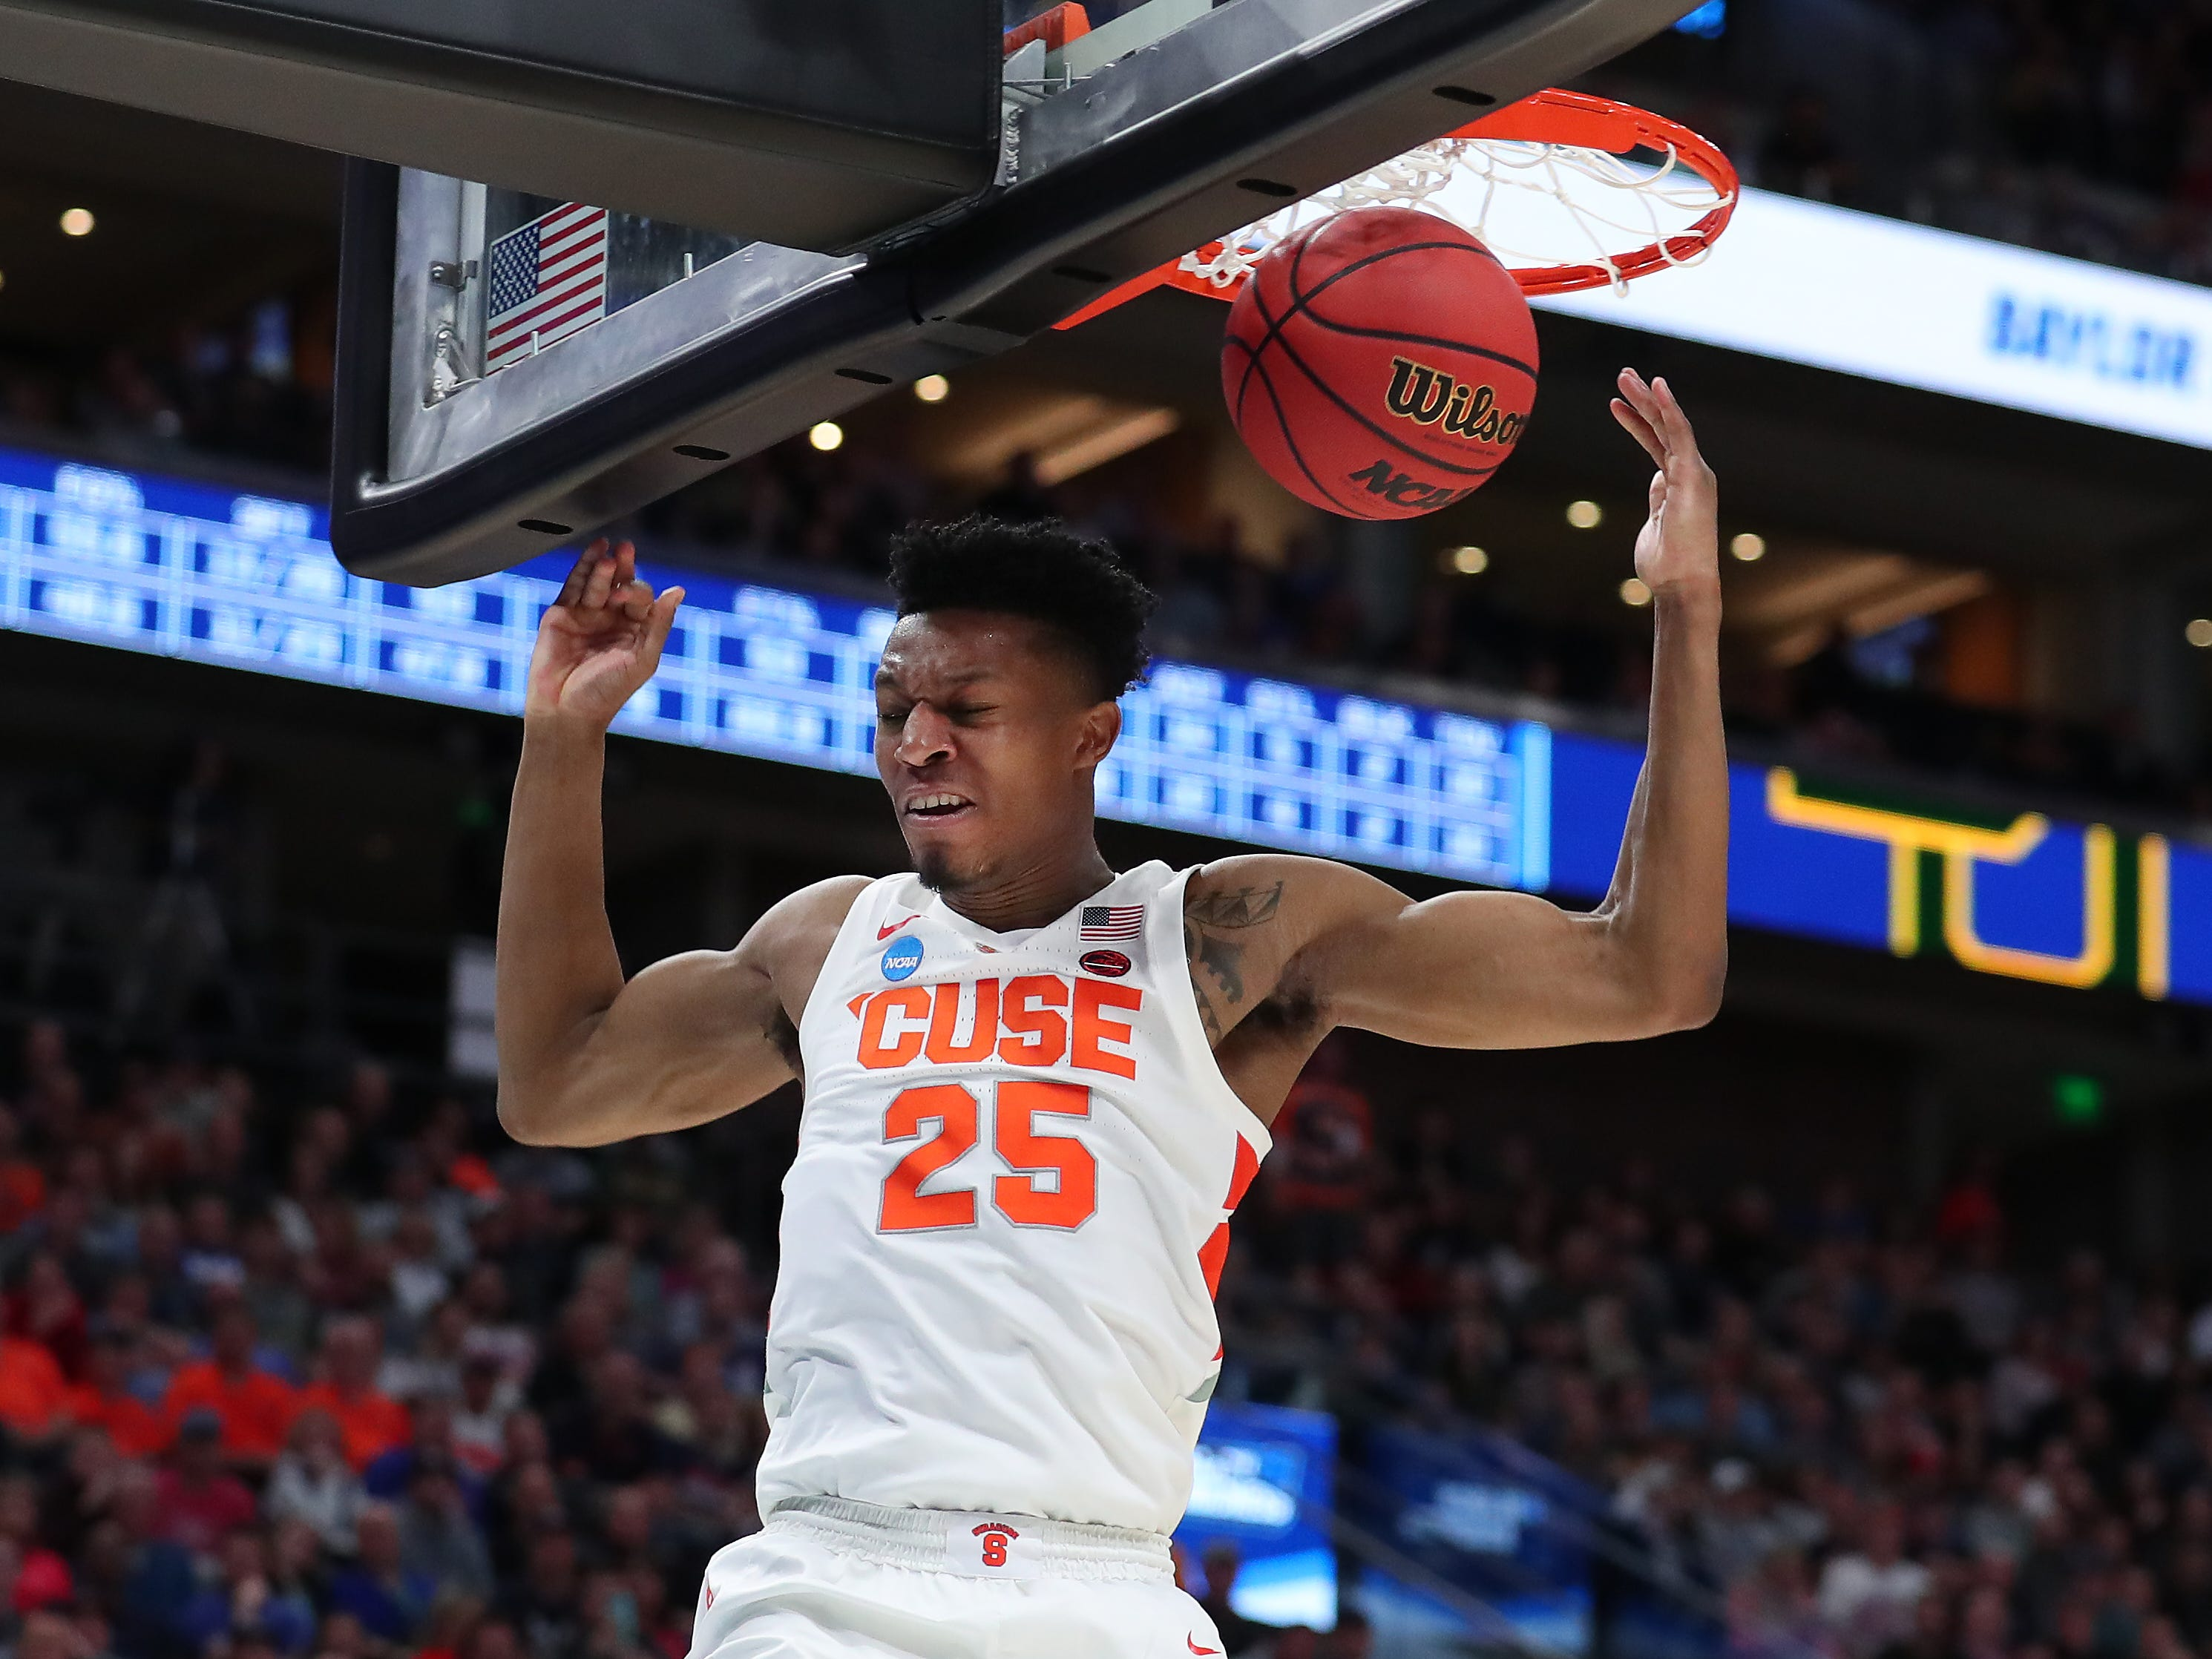 Tyus Battle of the Syracuse Orange dunks against the Baylor Bears during the second half in the first round of the 2019 NCAA Men's Basketball Tournament at Vivint Smart Home Arena on March 21, 2019 in Salt Lake City, Utah.